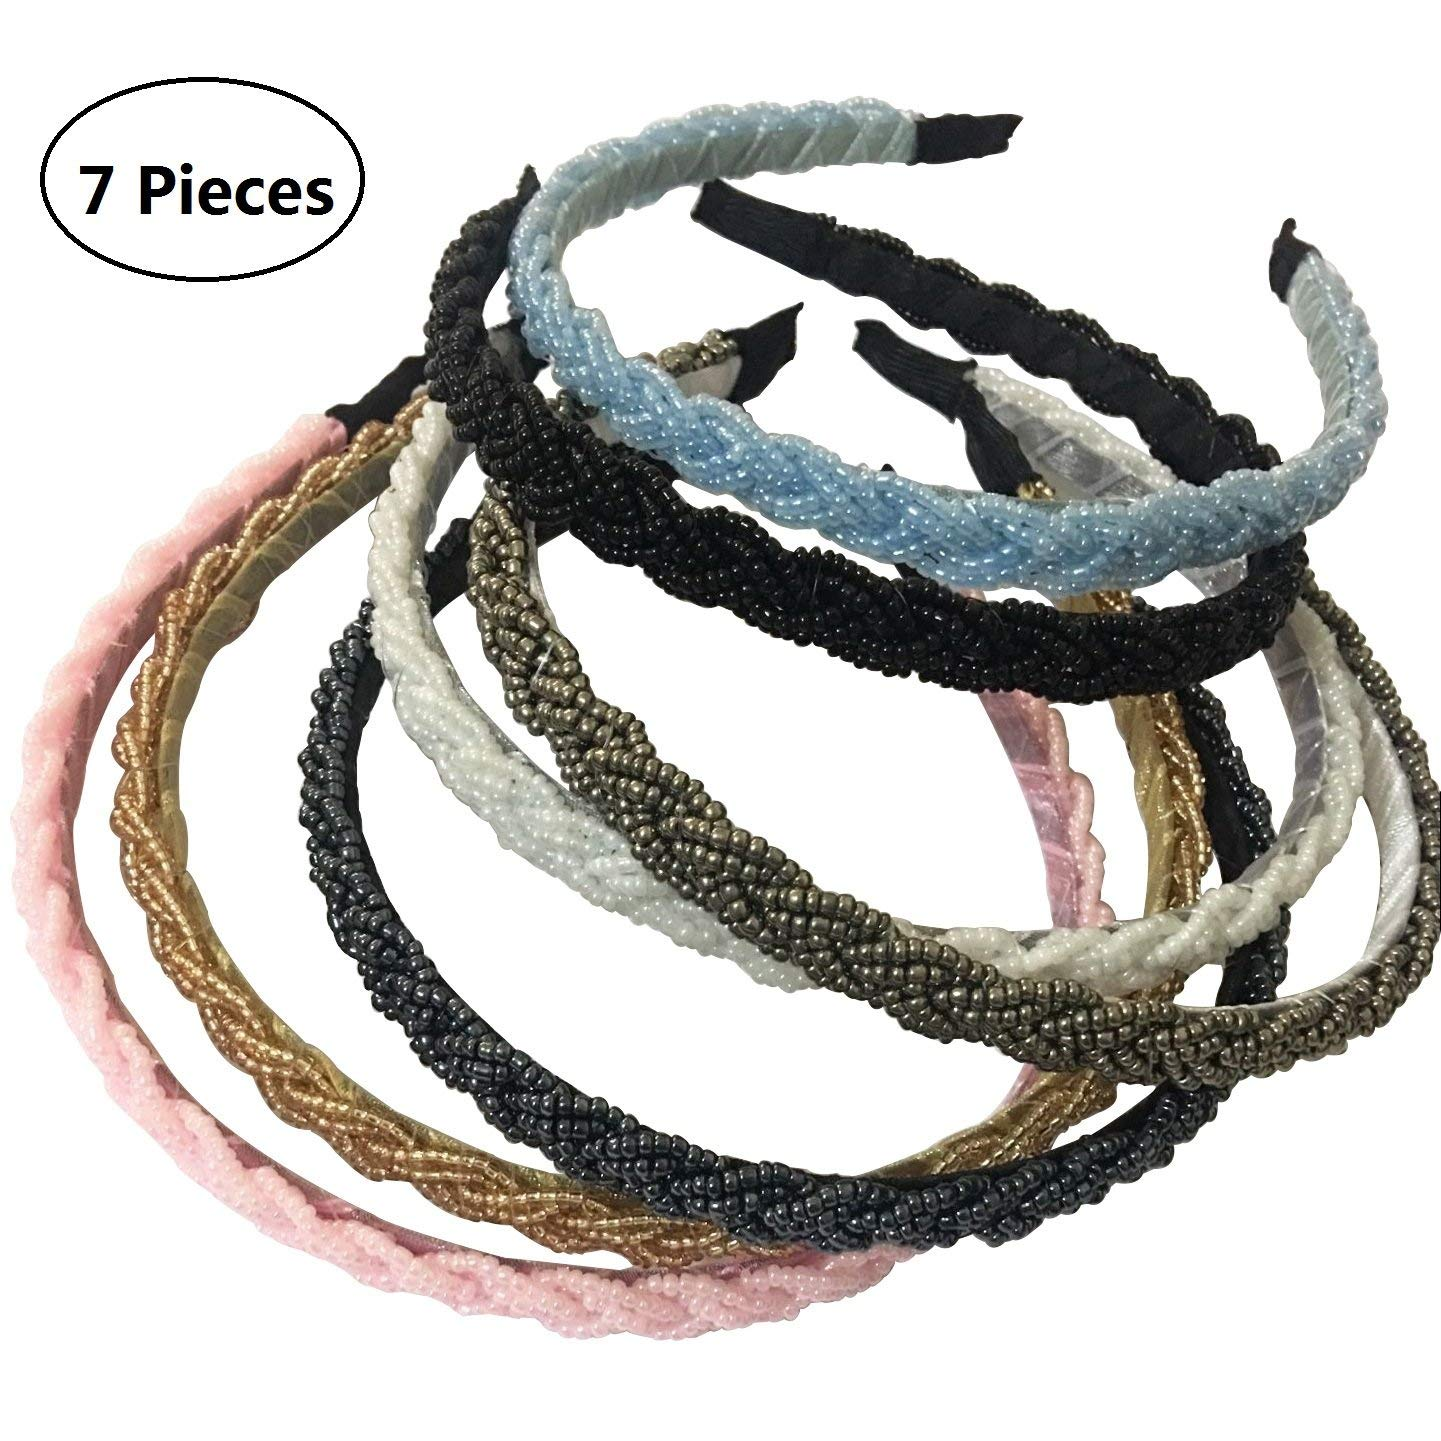 Baoblaze Pack of 50 Fashion Design Jewelry Findings Bead Cap Necklace Leather Cord End Caps Tassel Crimp End Connector Fabric Flower Pieces DIY Jewelry Making Craft Hair Ponytail Hair Band Making